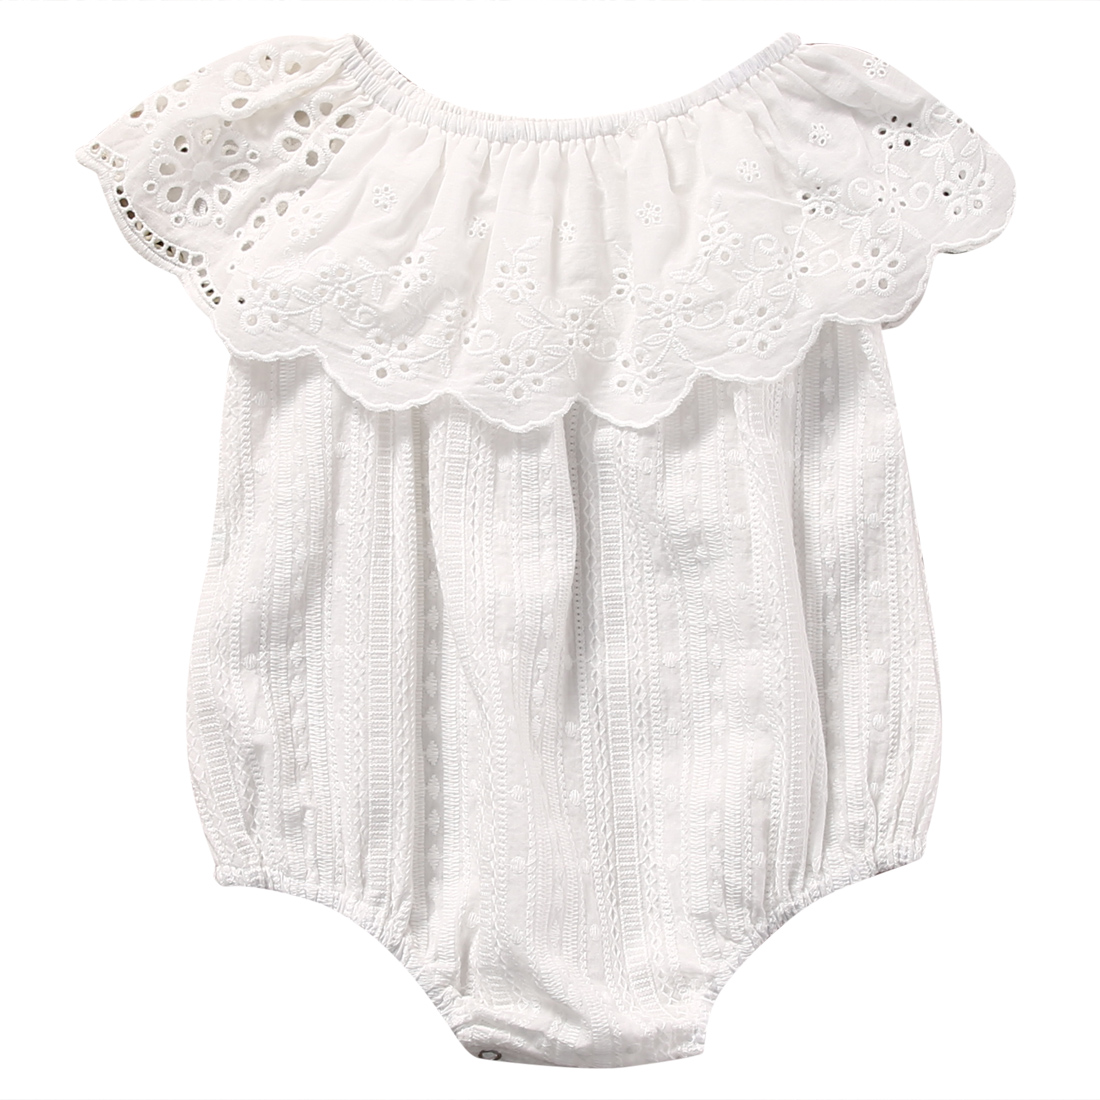 2017 Summer Newborn Baby Girl White Lace Romper Jumpsuit Floral Infant Clothes Outfit Sunsuit newborn infant baby clothes girl lace strap floral romper jumpsuit headband 2pcs summer baby girl romper clothes baby onesie